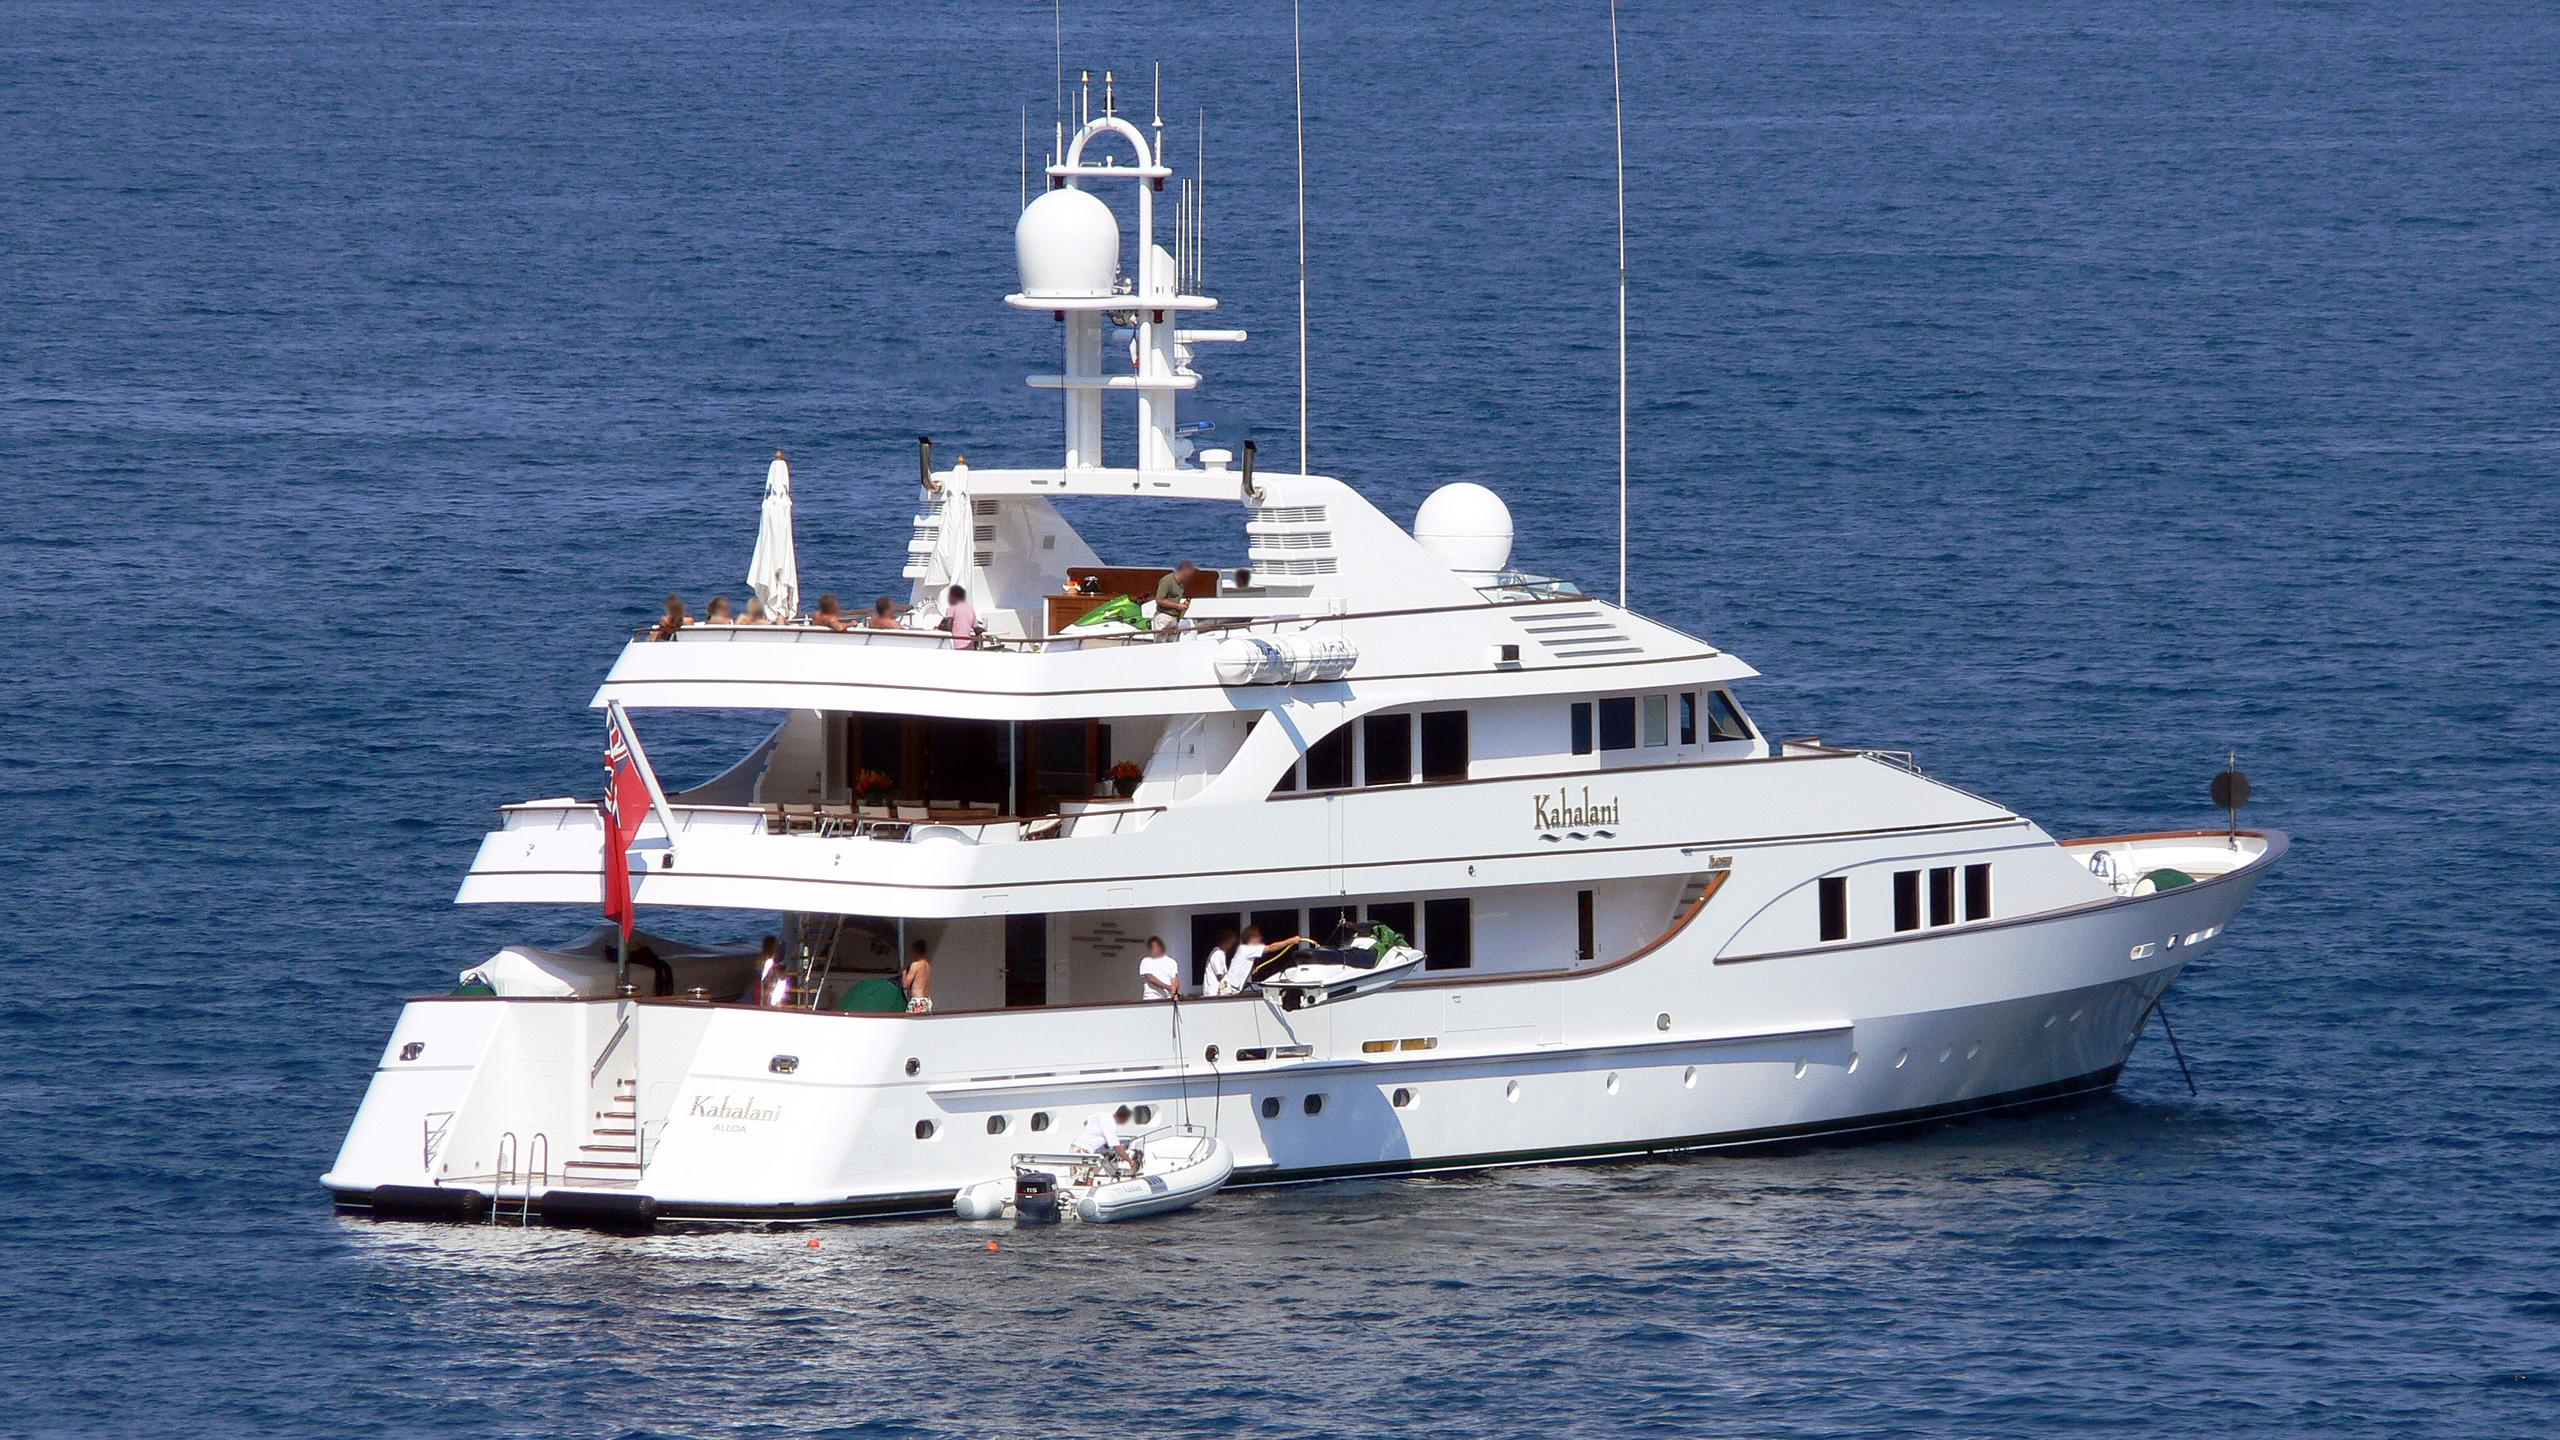 eclipse-motor-yacht-feadship-1993-43m-stern